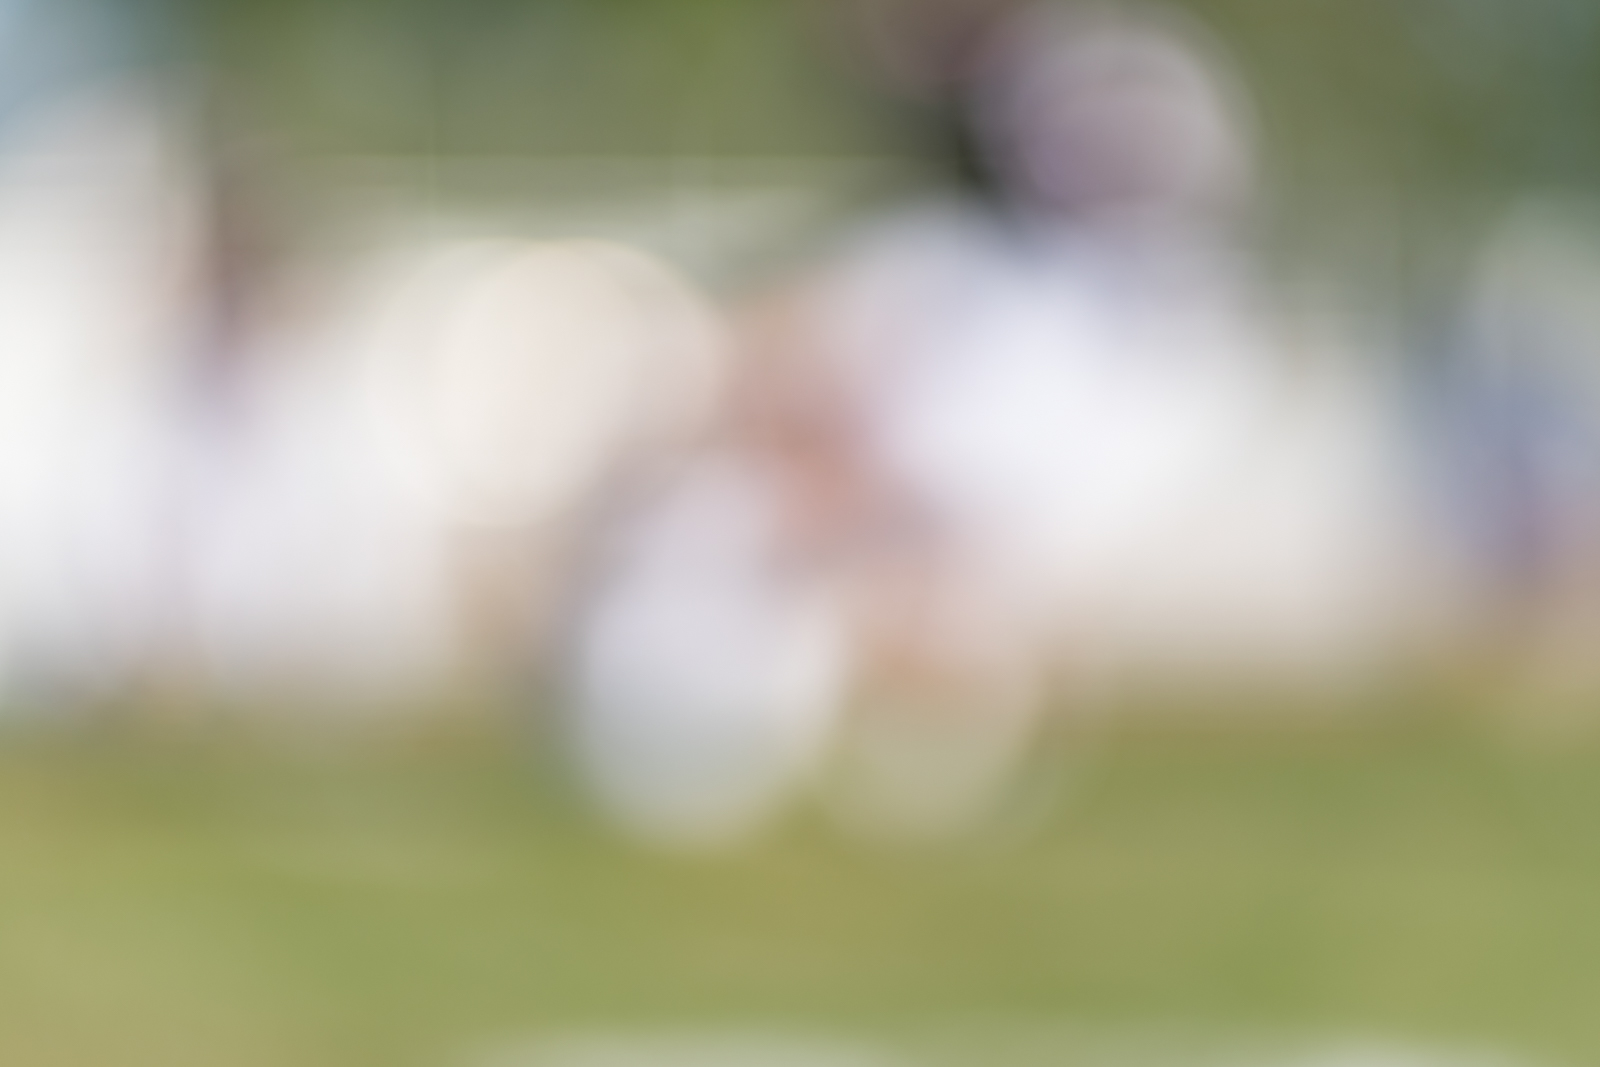 I know you won't believe me, but there is a football player running with the ball in this image…